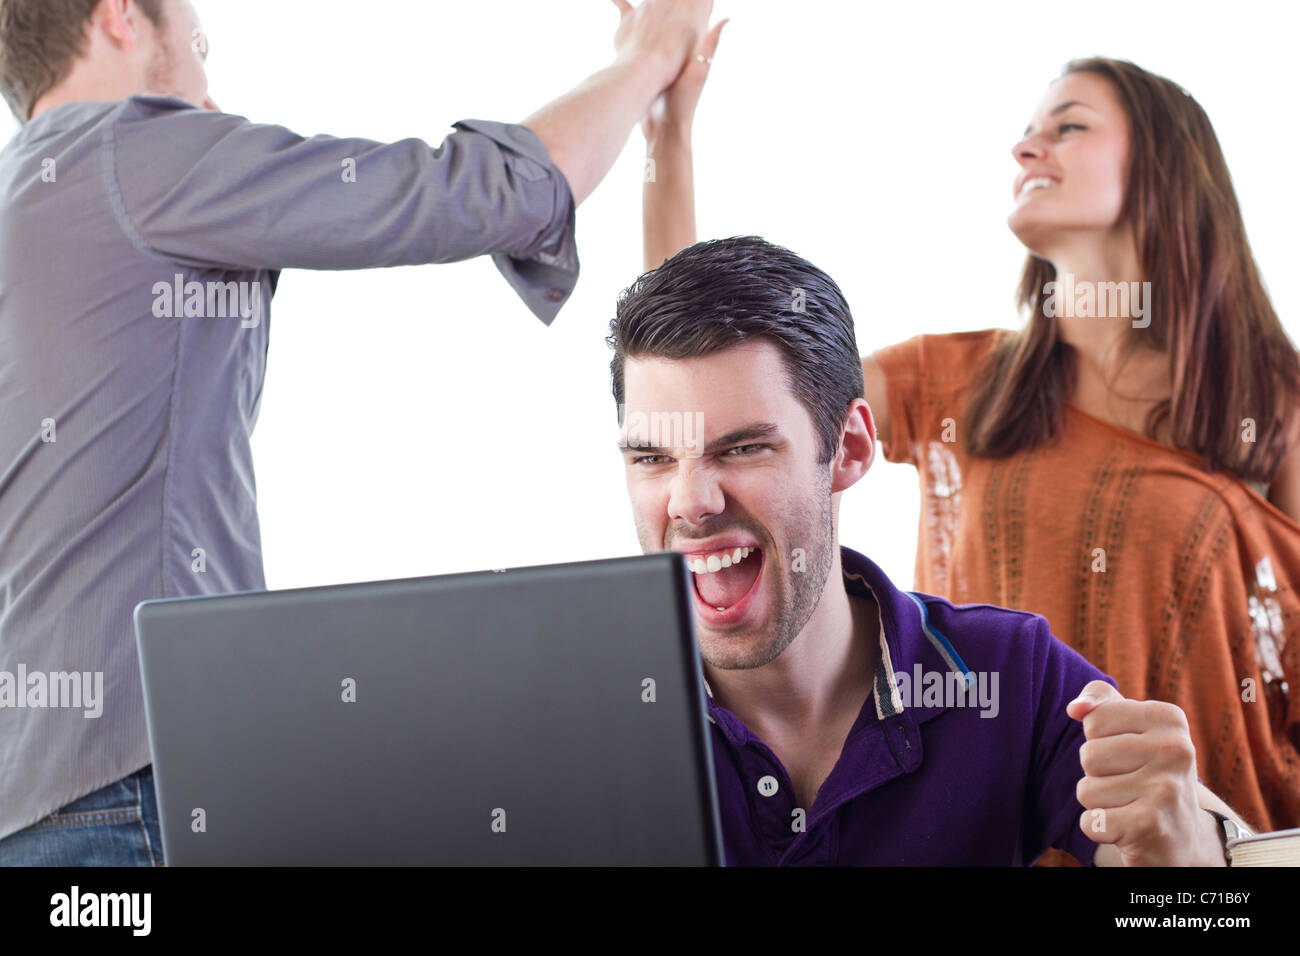 Three happy 20 somethings react to some fantastic news - Stock Image